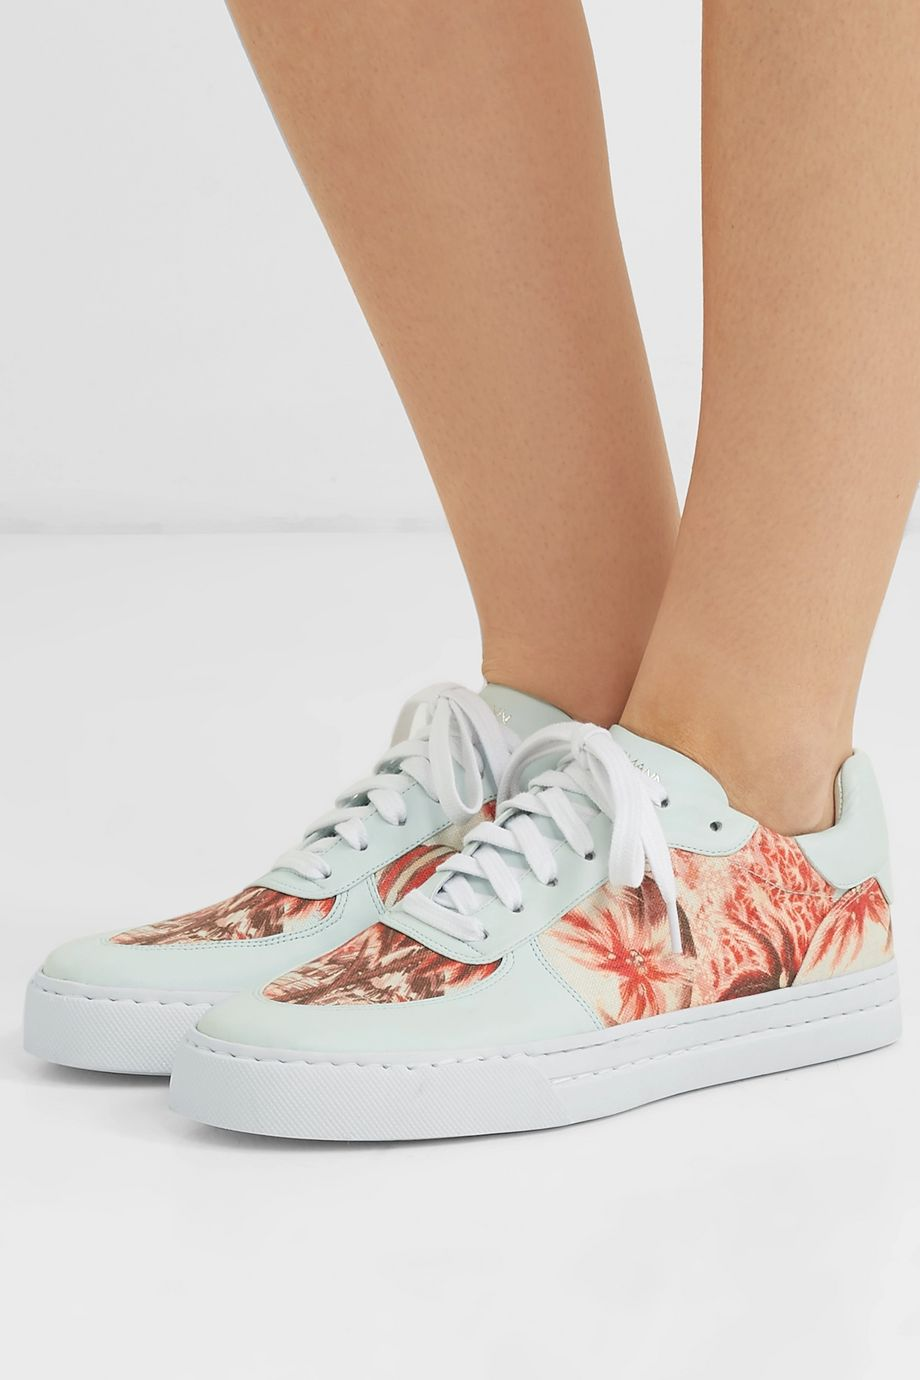 Zimmermann Leather-trimmed printed linen sneakers